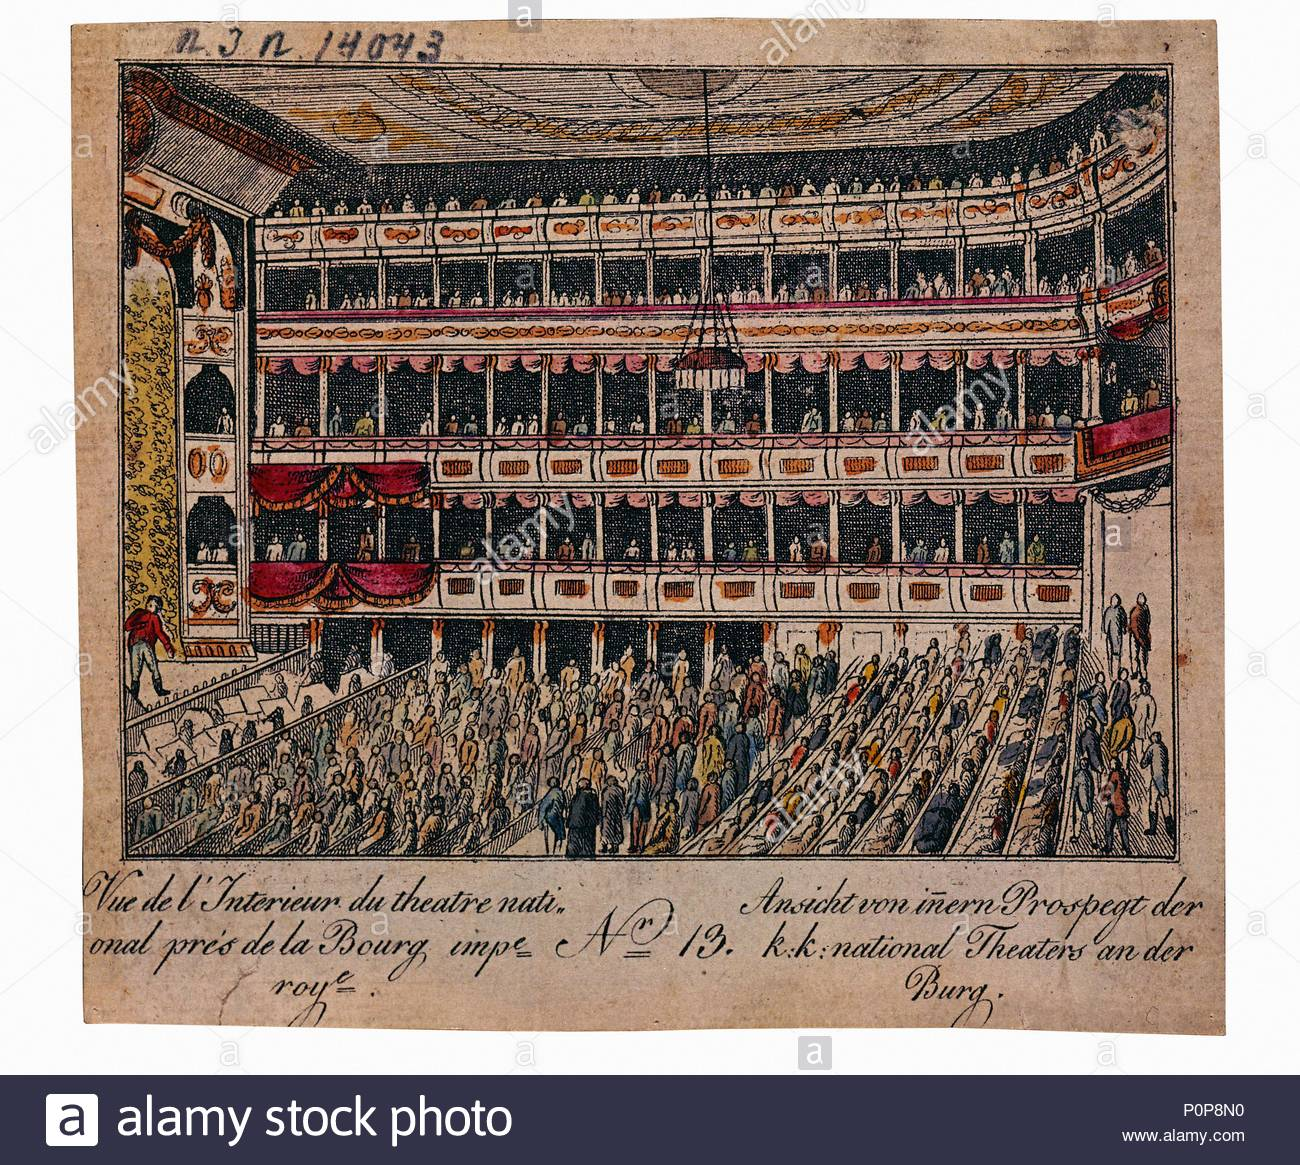 https://c8.alamy.com/comp/P0P8N0/viennas-quot-old-court-theatrequot-next-to-the-imperial-palace-the-last-performance-before-demolition-was-on-october-131888-a-day-before-the-first-performance-in-the-new-house-interior-location-wien-museum-karlsplatz-vienna-austria-P0P8N0.jpg